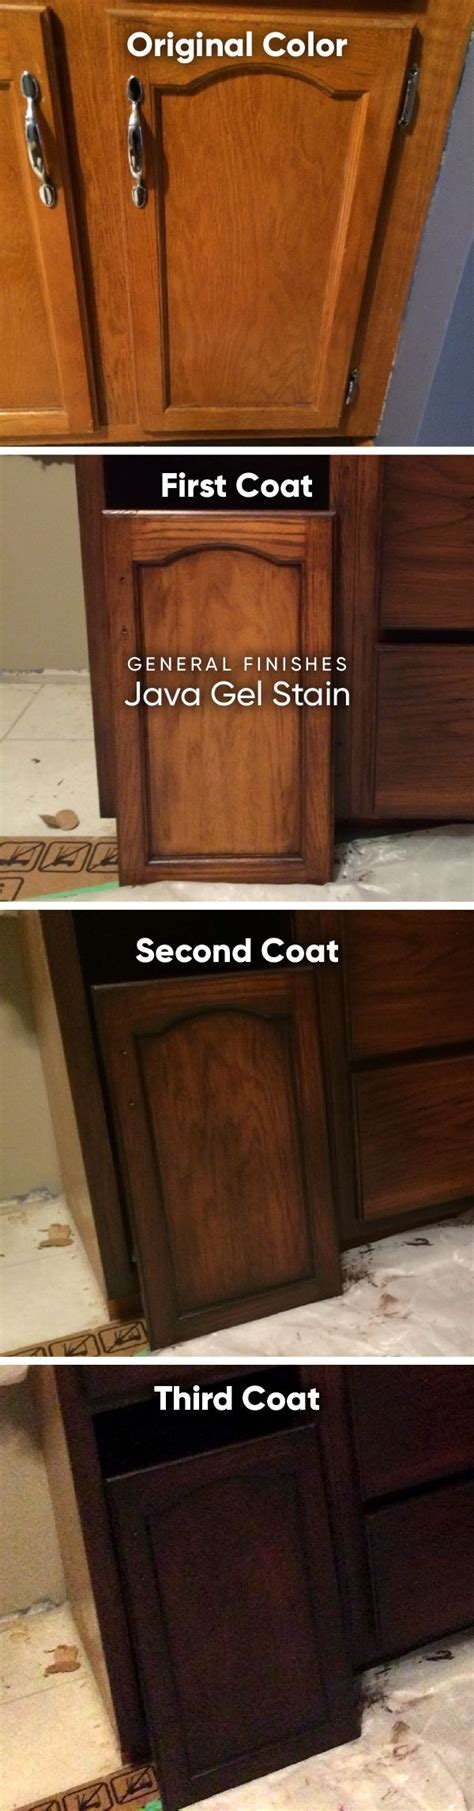 how to update honey oak kitchen cabinets gel stain general finishes java diy house ideas 9594